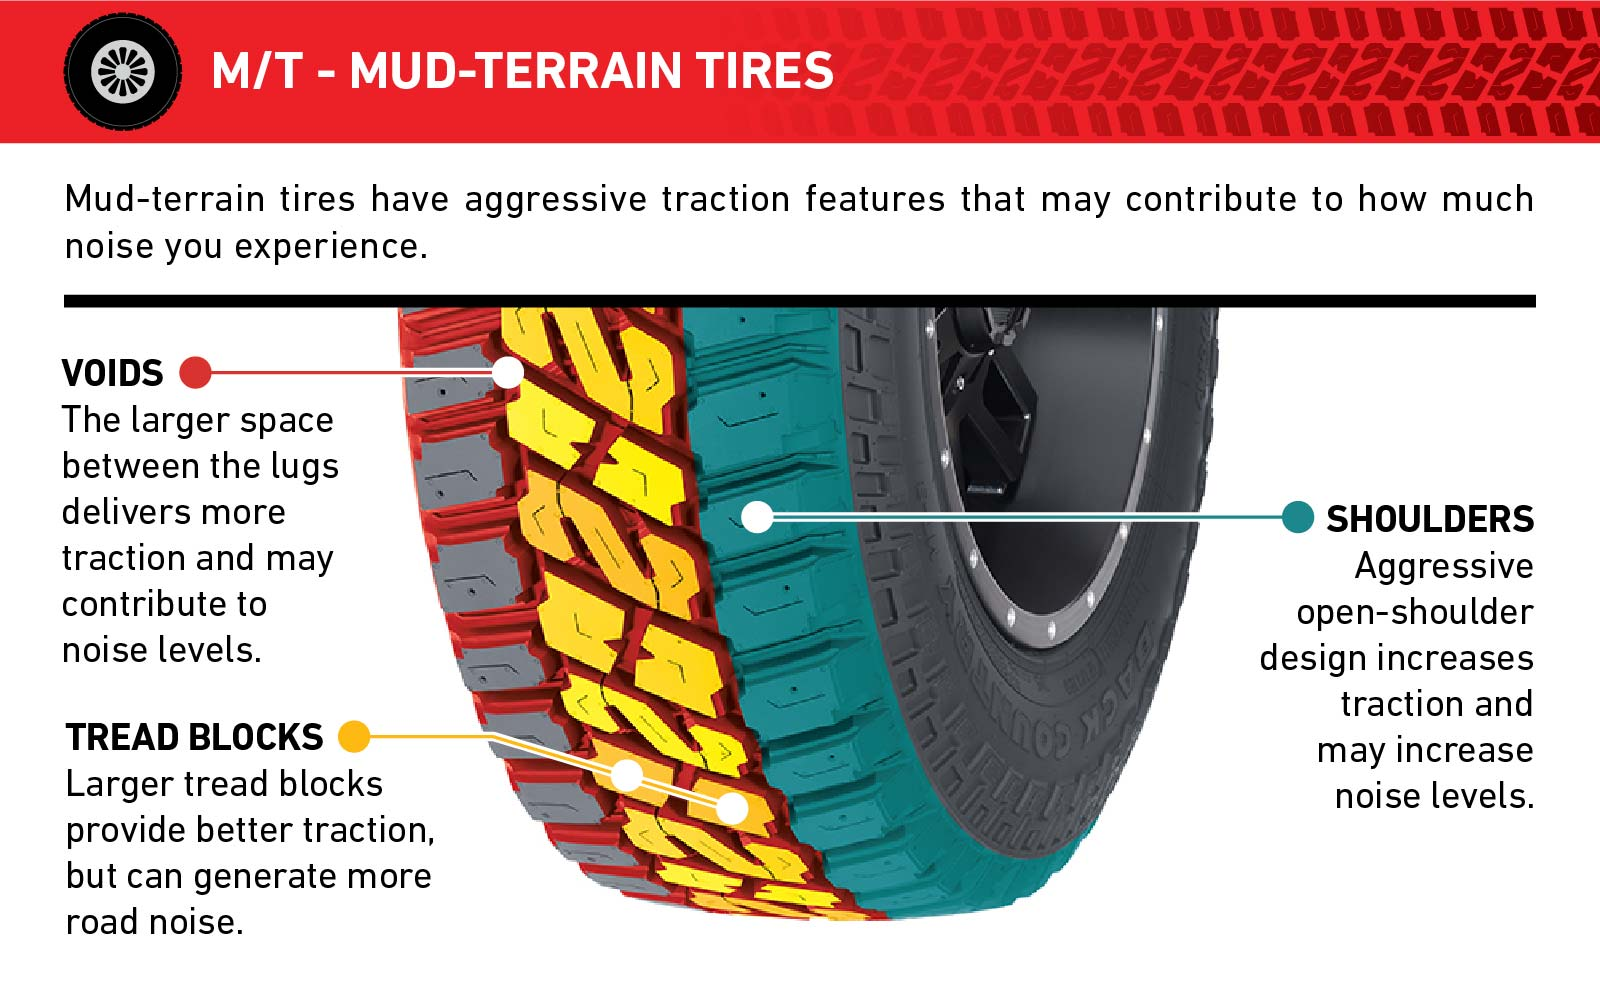 Graphic showing Mud-terrain tire benefits